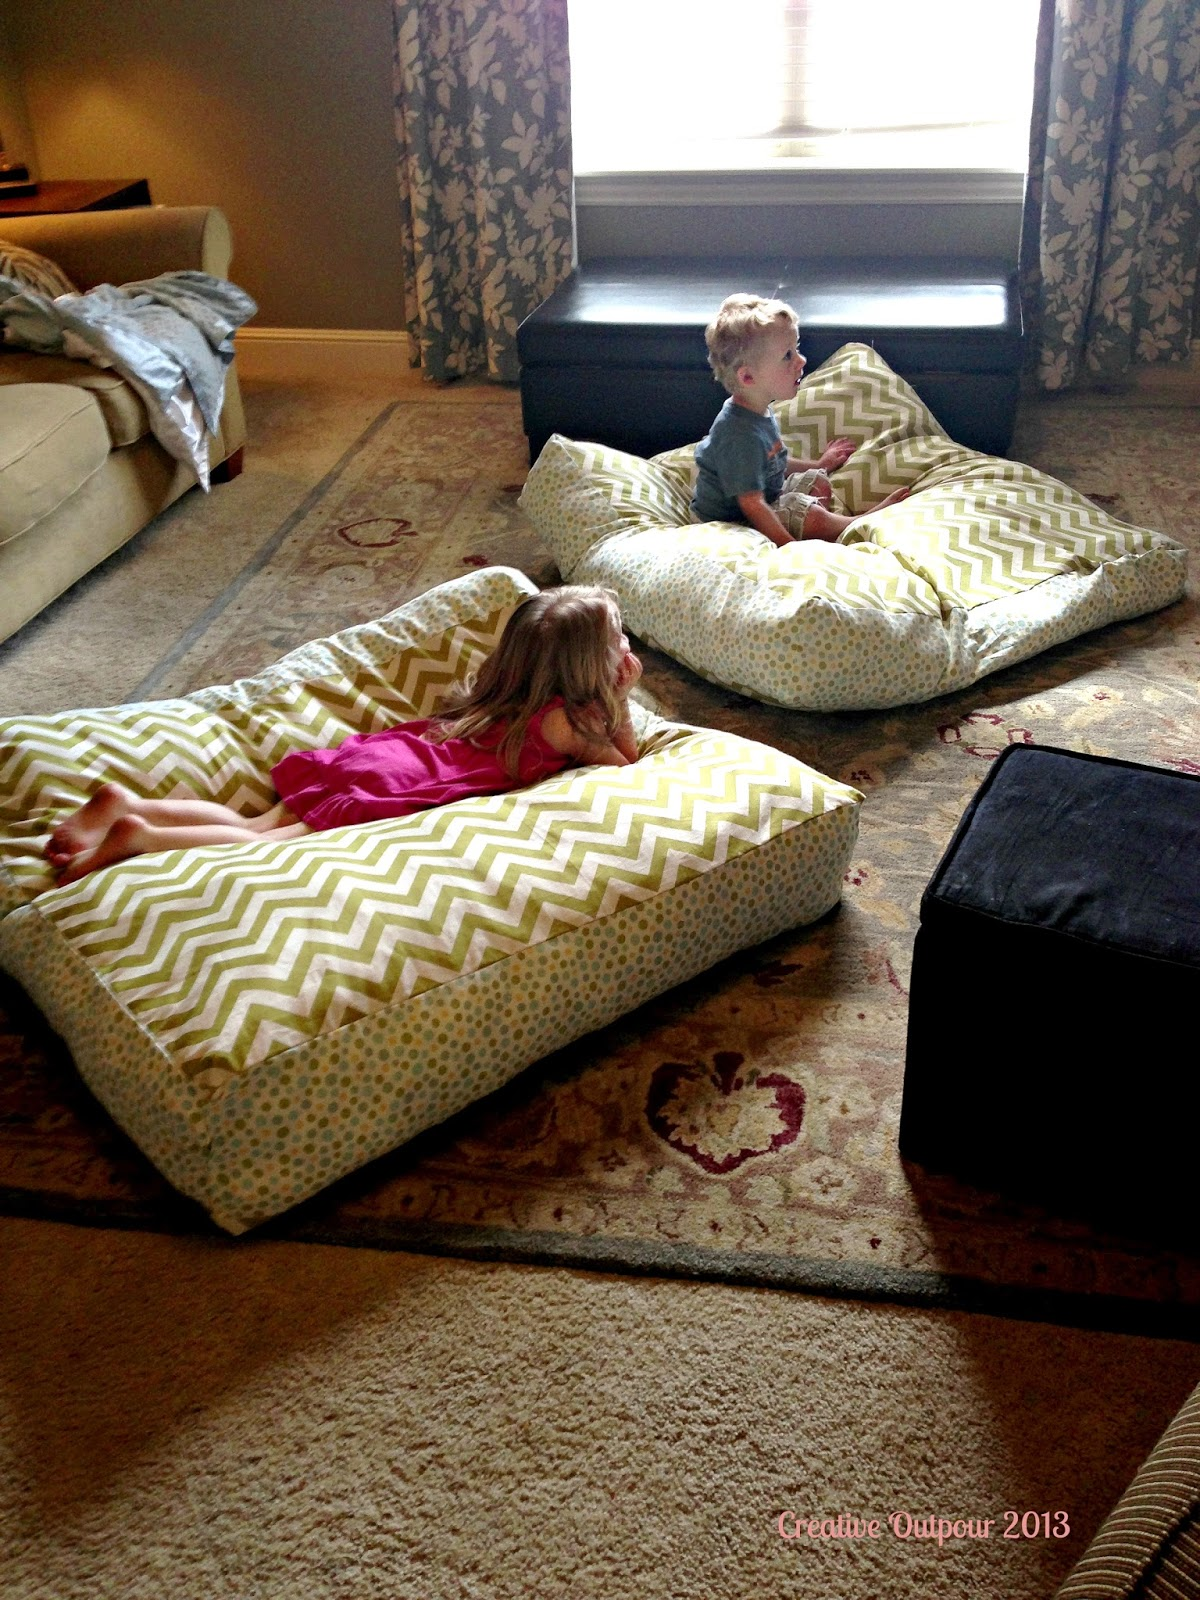 Huge Pillows For Floor : Floor Pillows Completed! - Creative Outpour